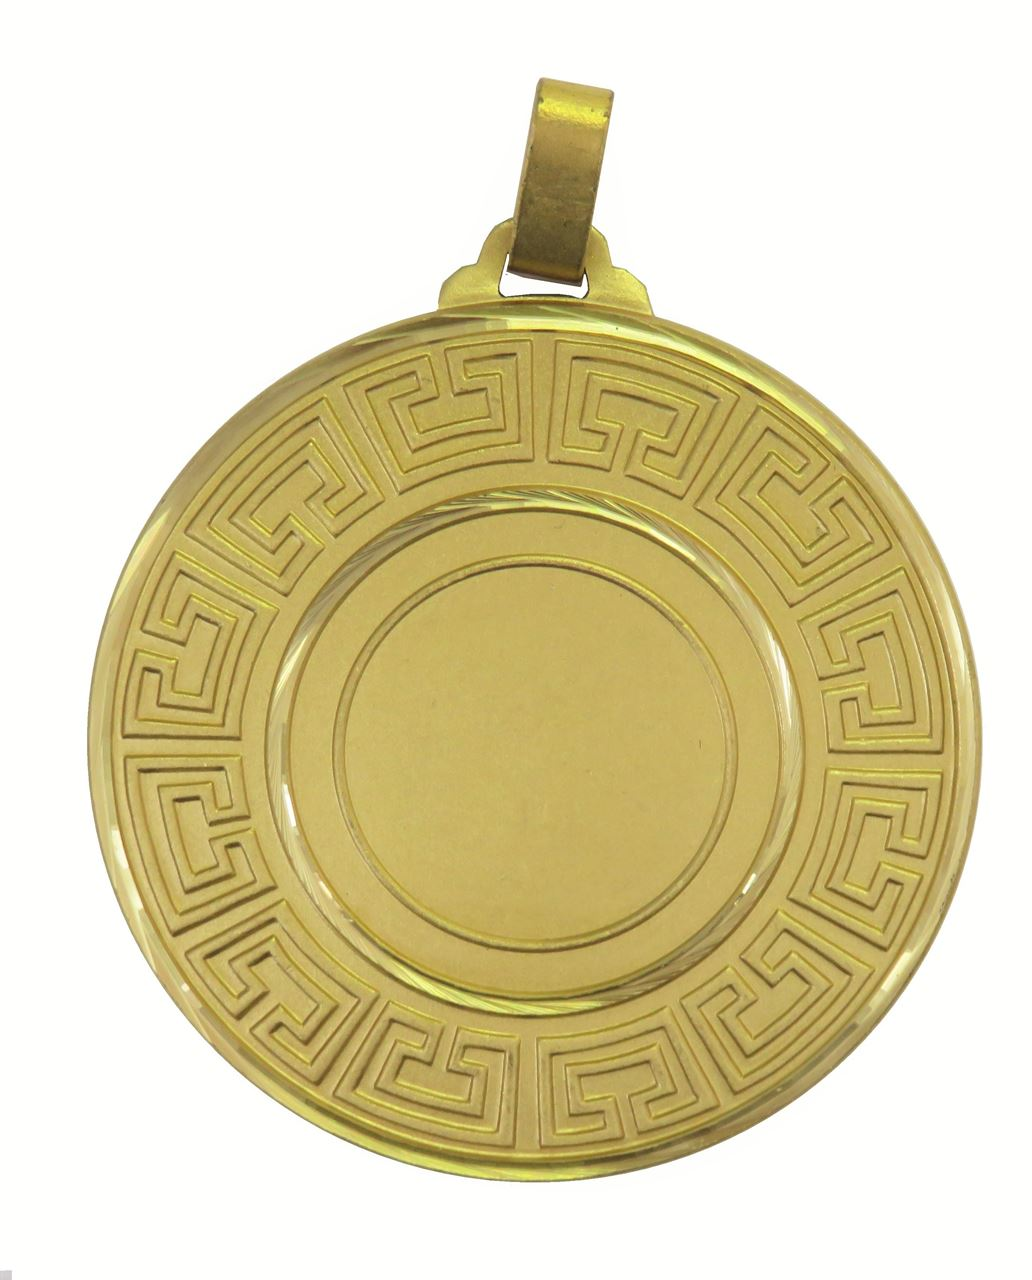 Gold Faceted Athena Medal (sizes: 60mm) - 5555F